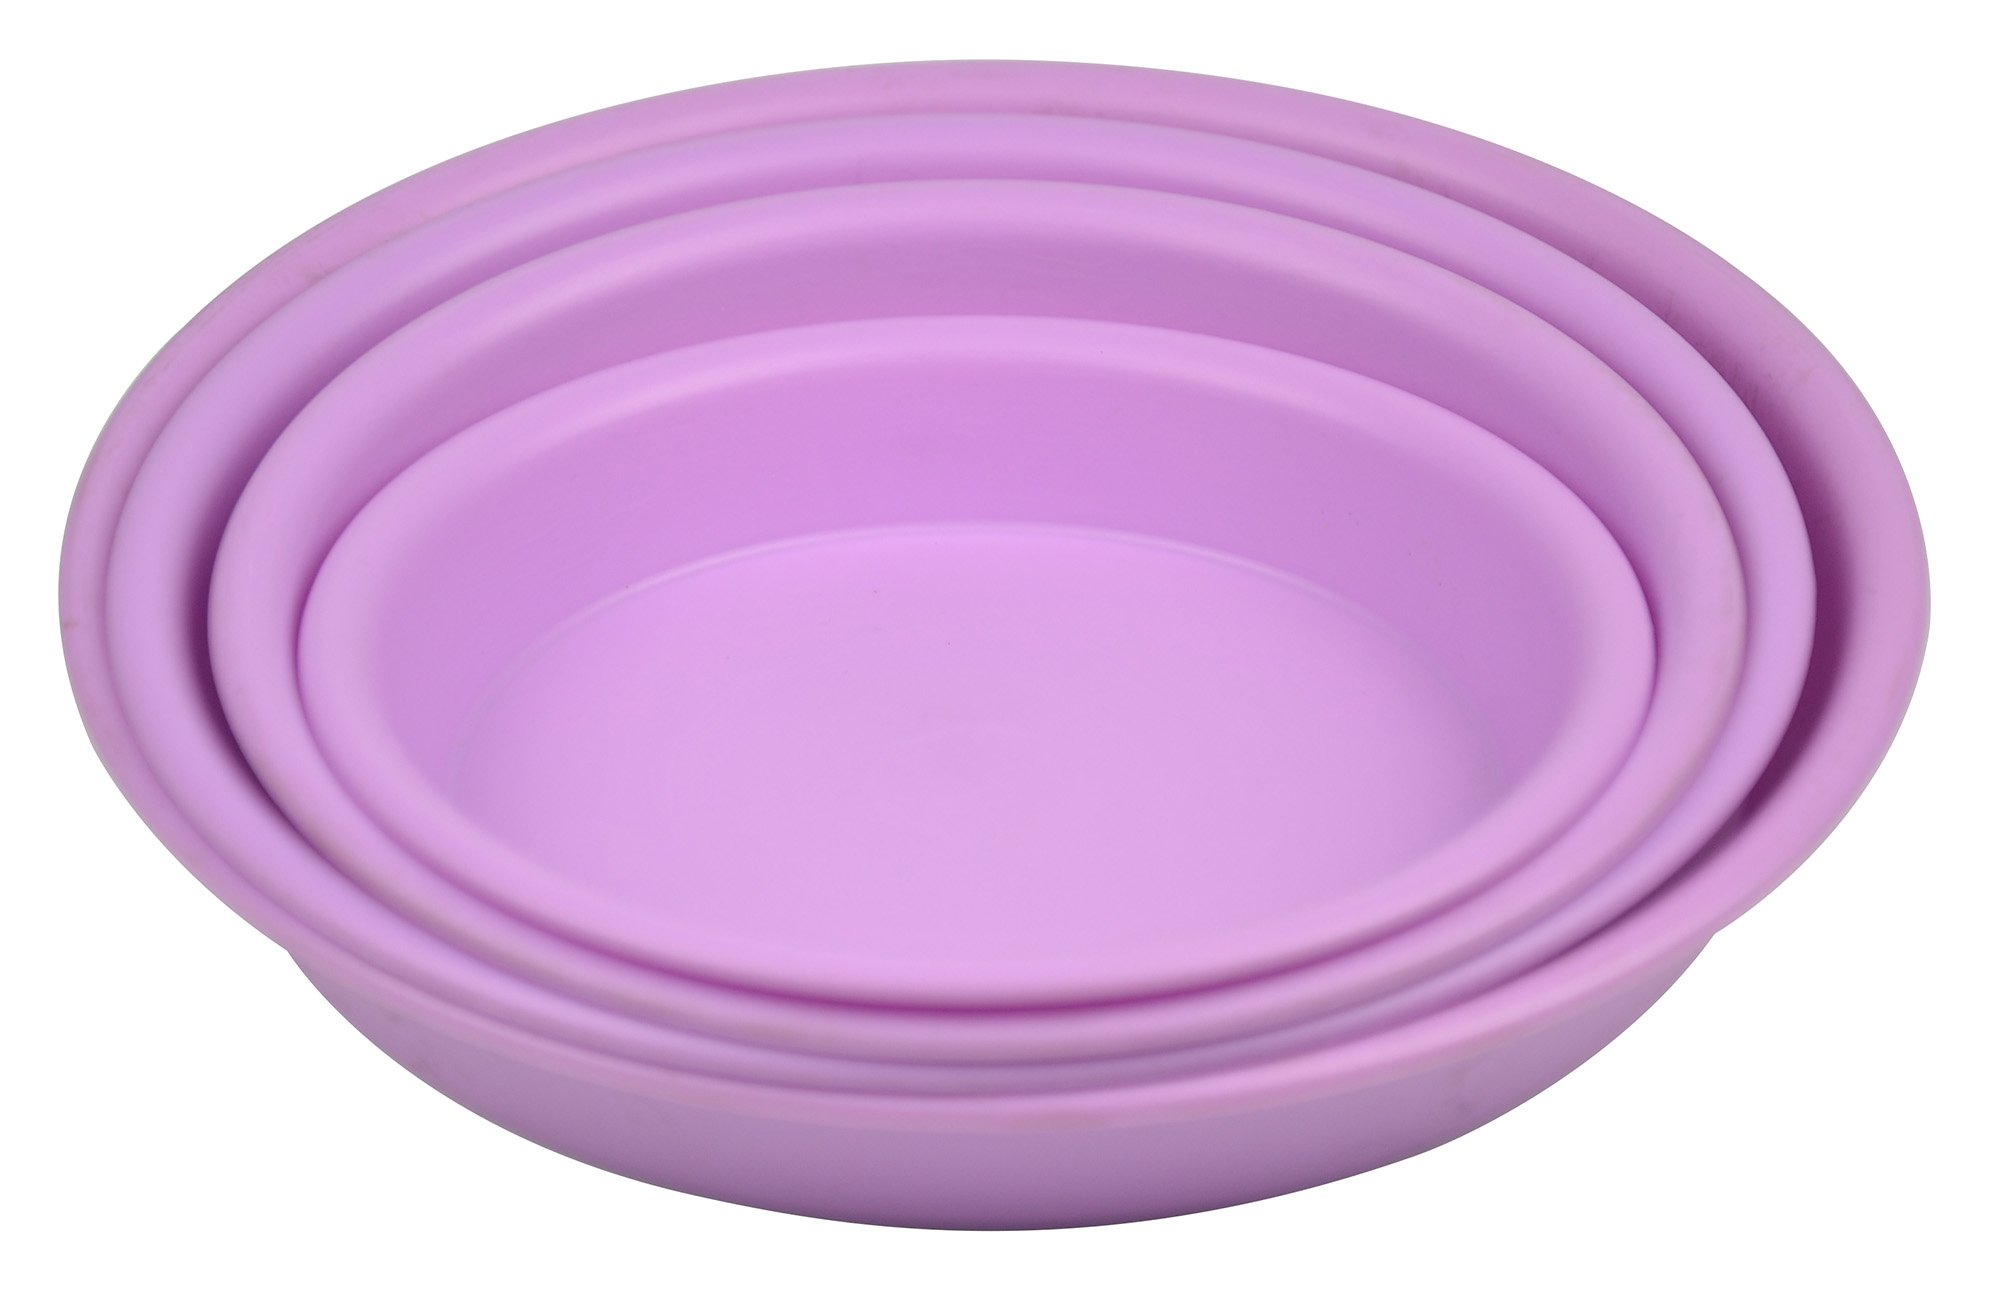 11.8'' Round Plant Saucer Planter Tray Pat Pallet for Flowerpot,Purple,400 Count